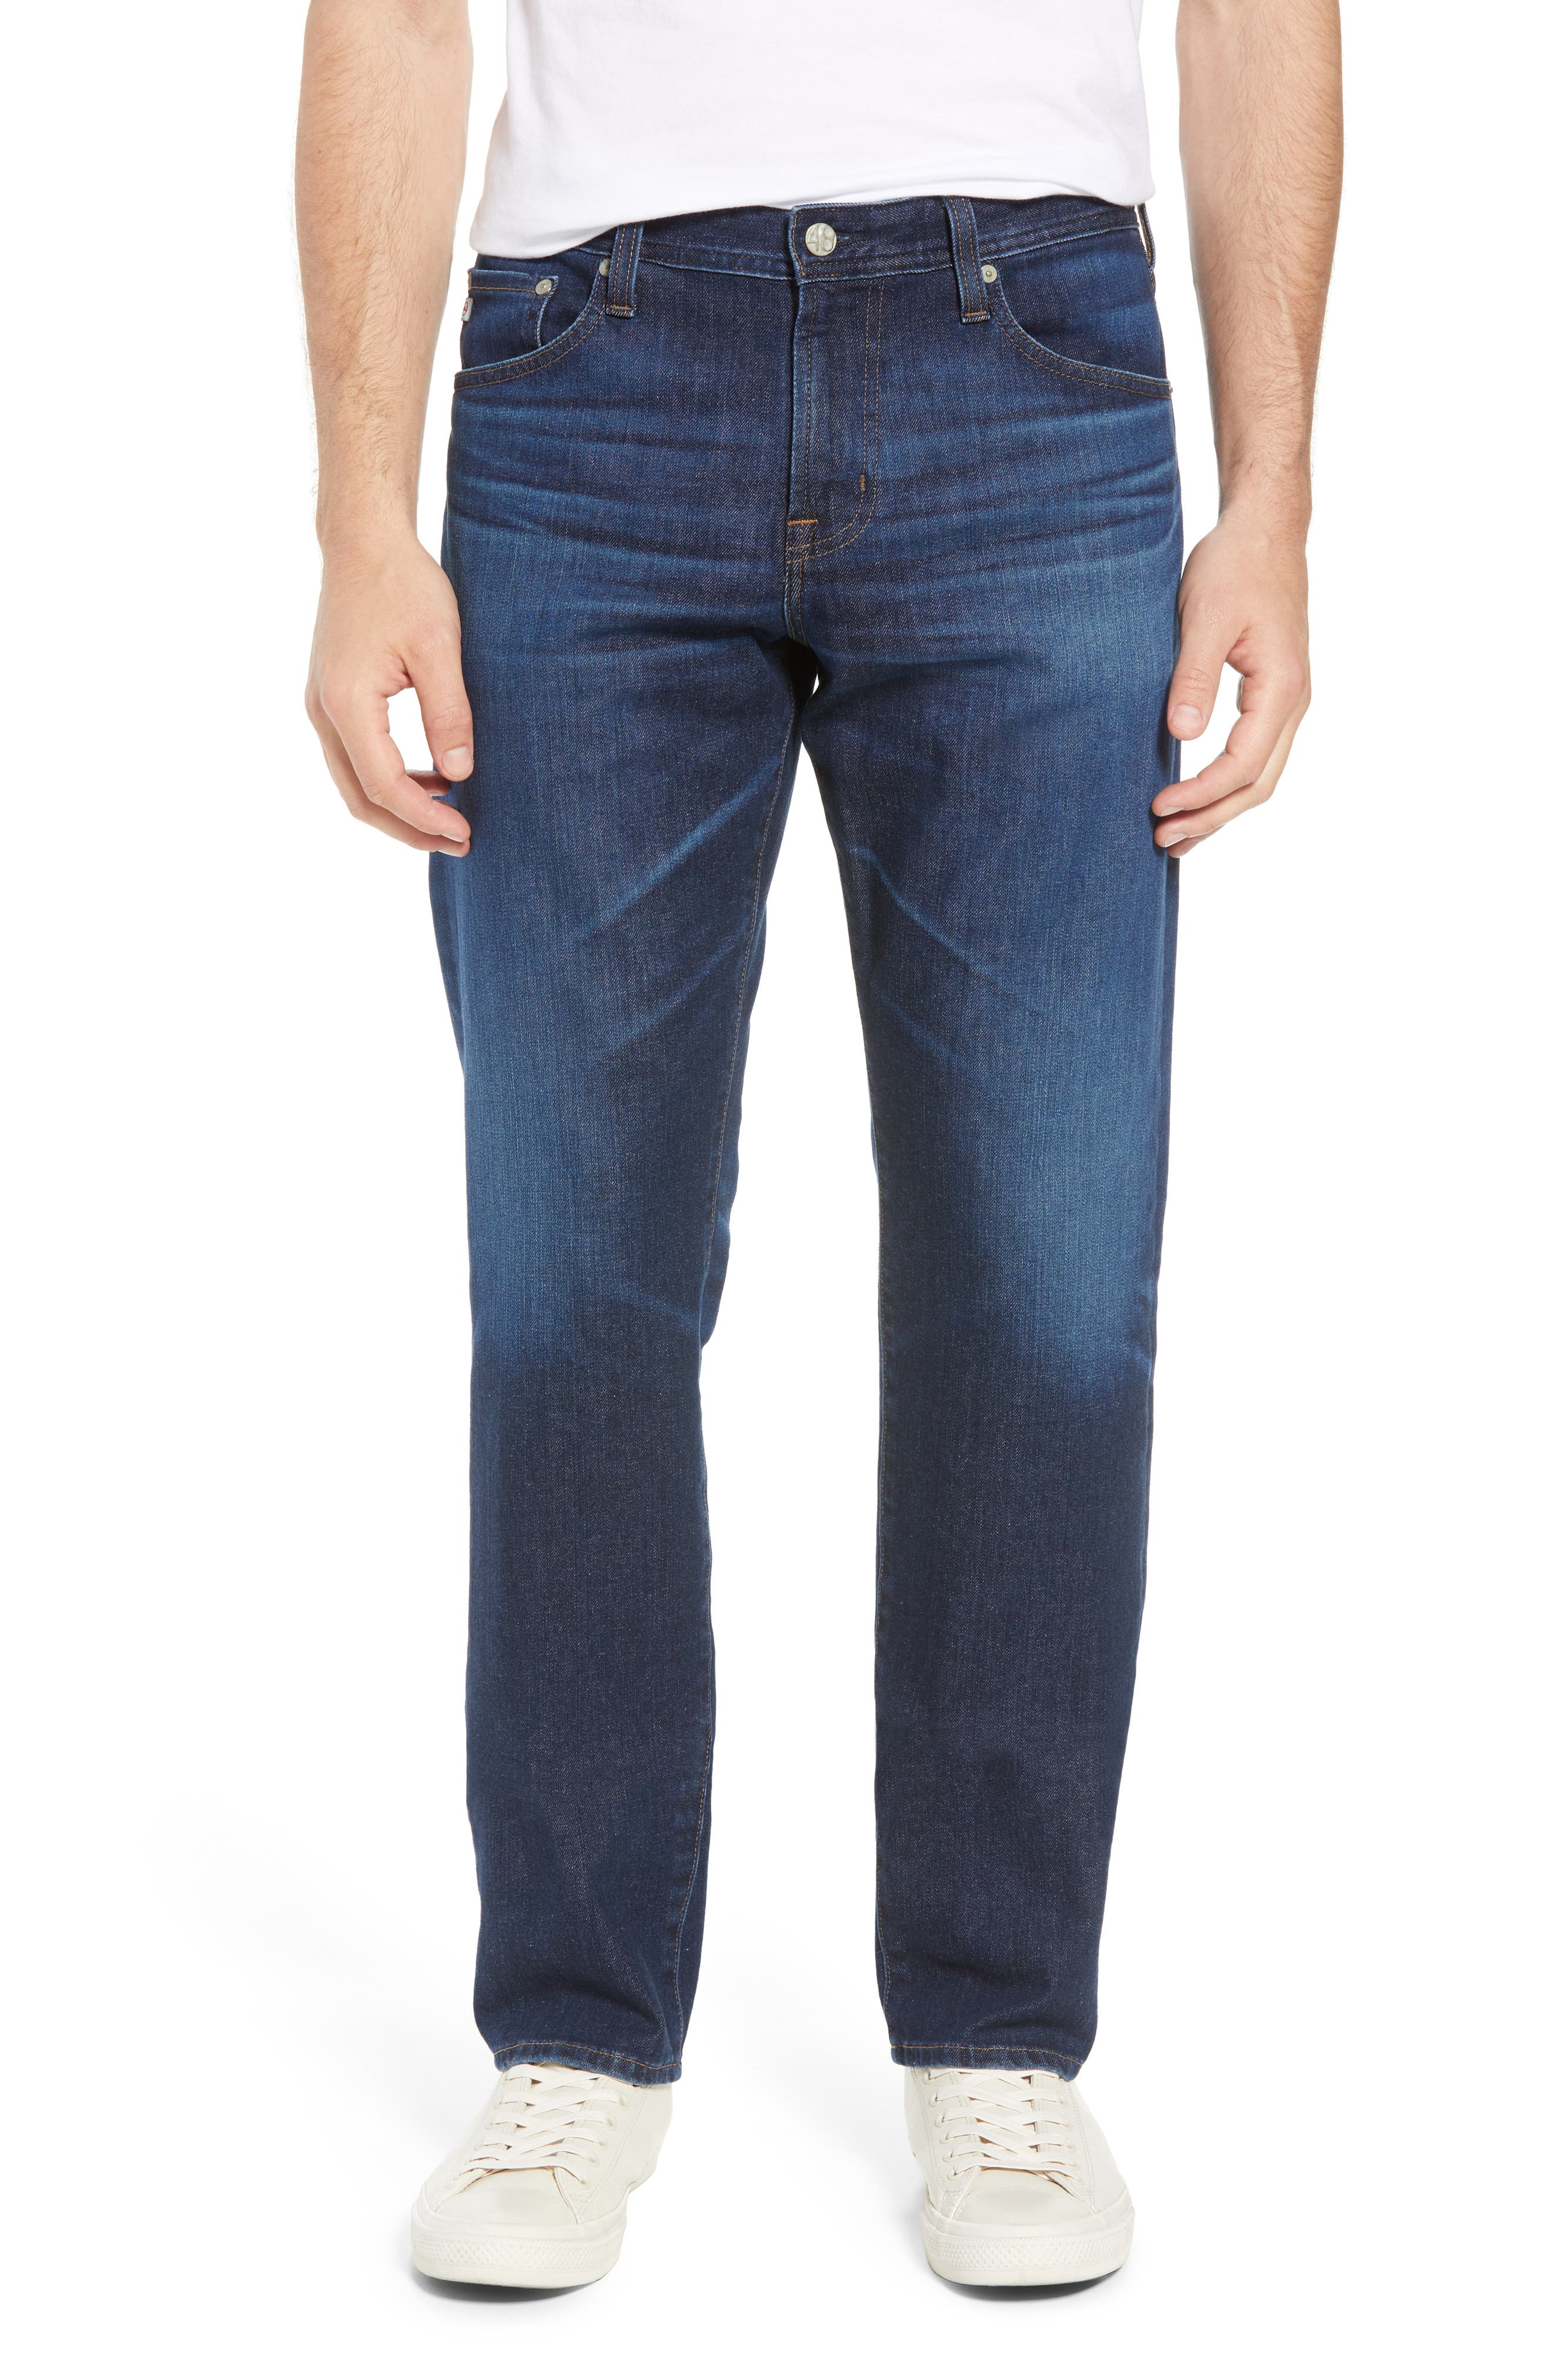 Graduate Slim Straight Fit Jeans,                             Main thumbnail 1, color,                             5 Years Lost Coast